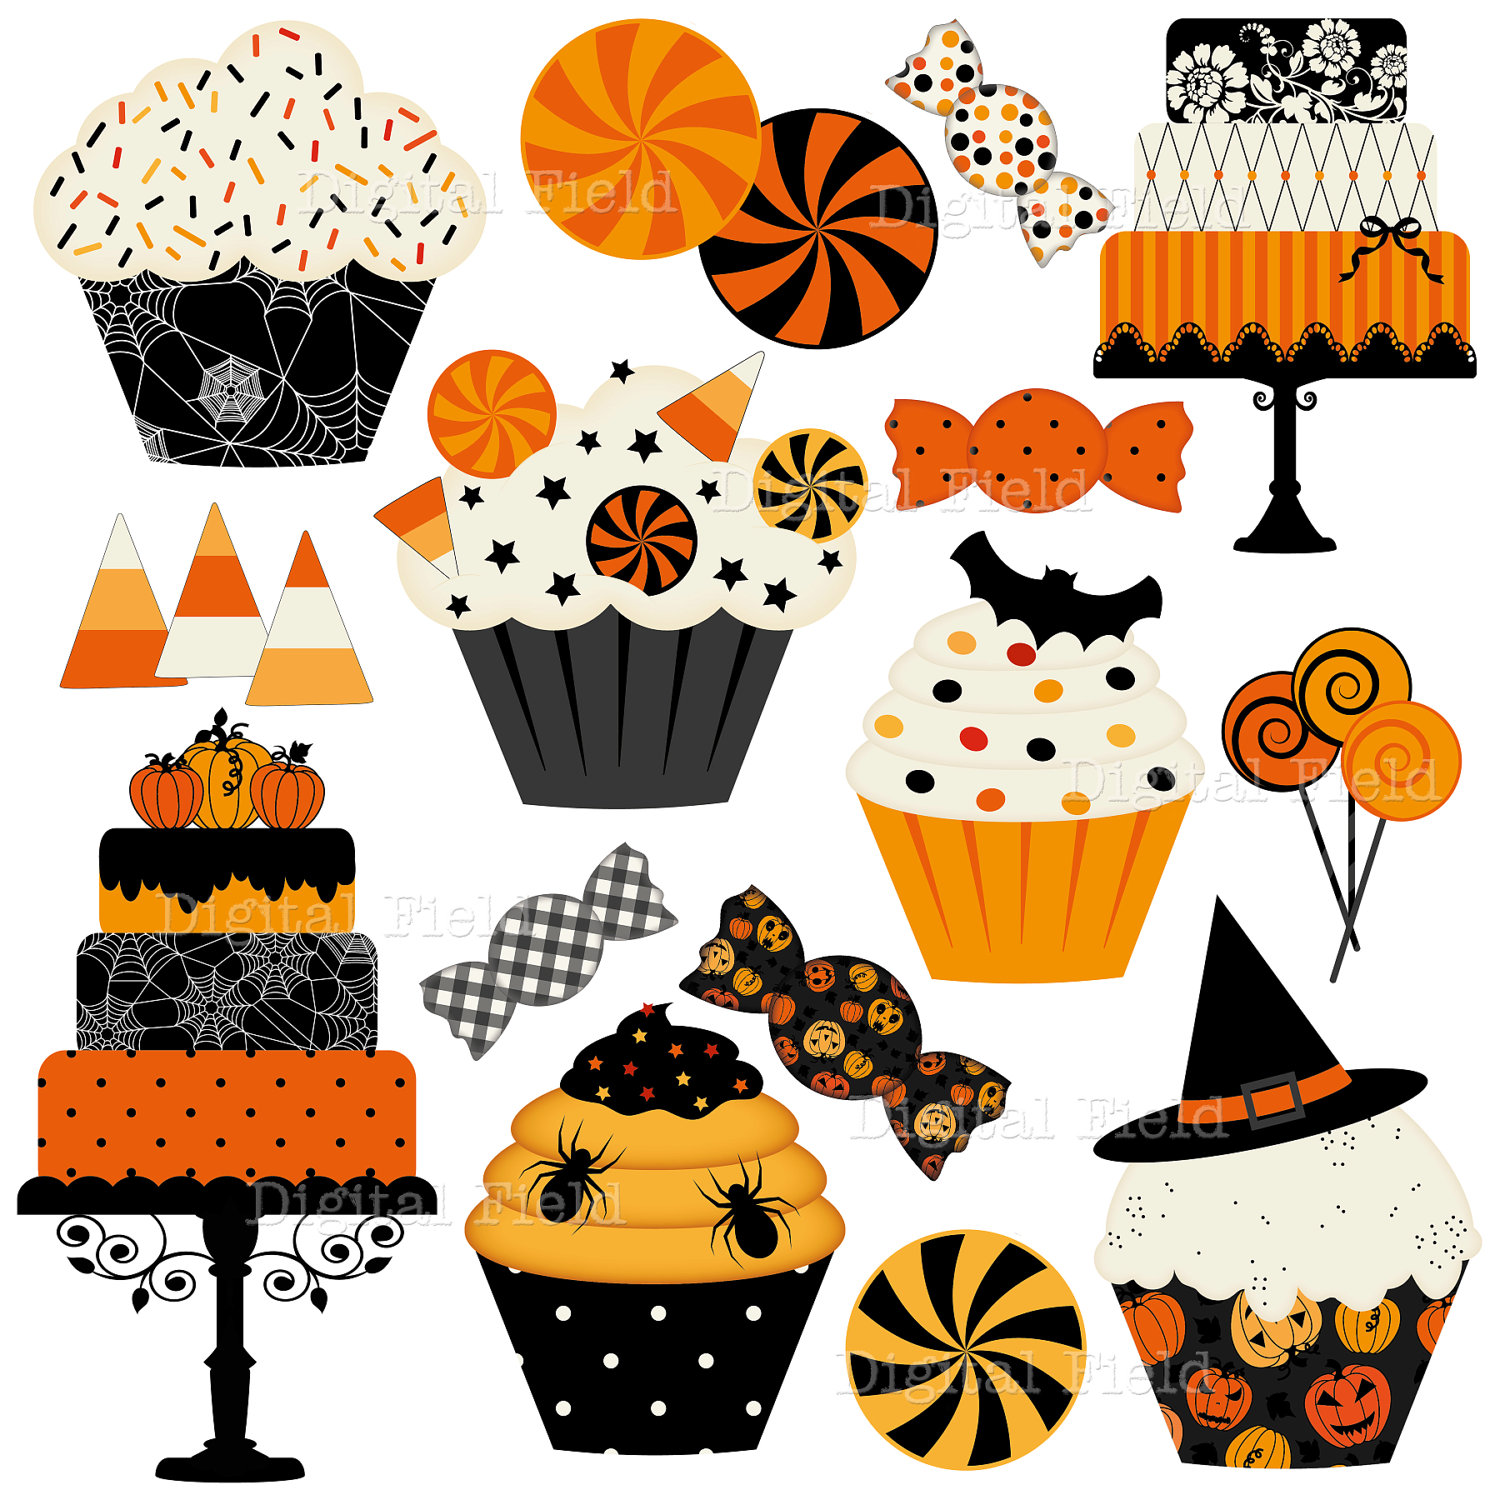 Halloween clipart printables png royalty free stock Halloween Cakes, Cupcakes and Candies Clip Art Set - Halloween ... png royalty free stock